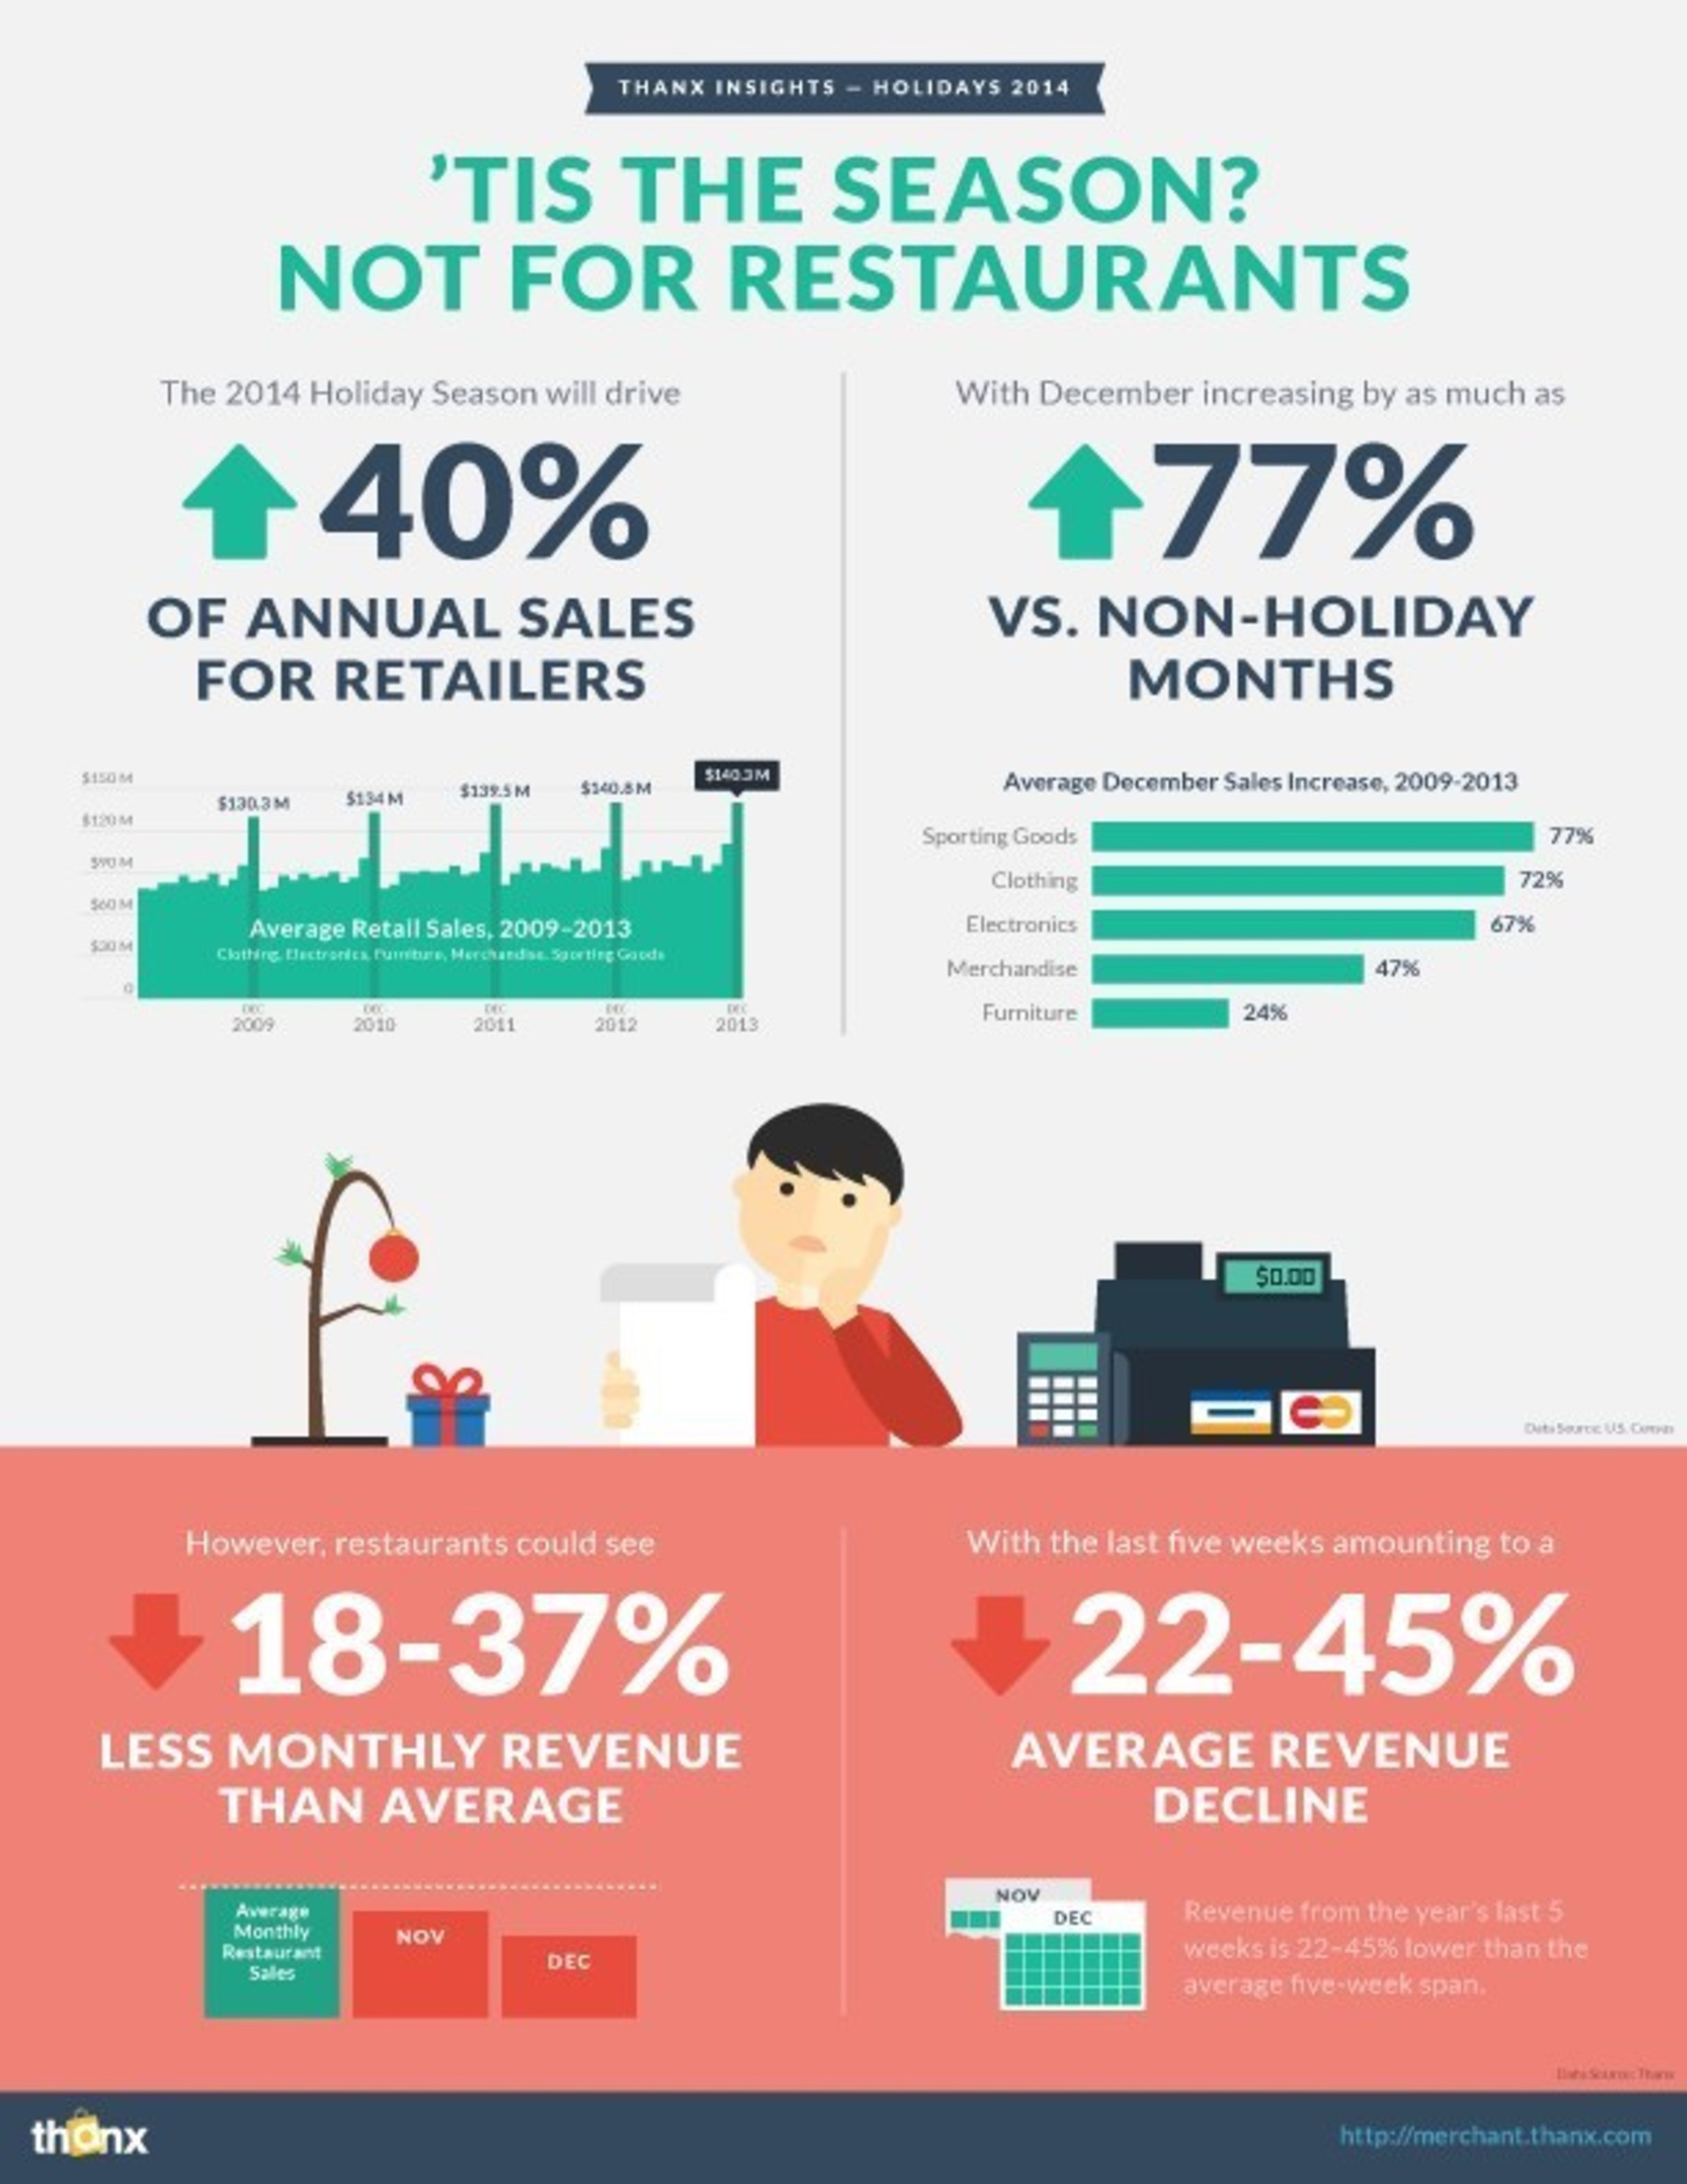 While retailers see December sales spike by as much as 77%, restaurant revenue declines 45% during the post-Thanksgiving holiday season.